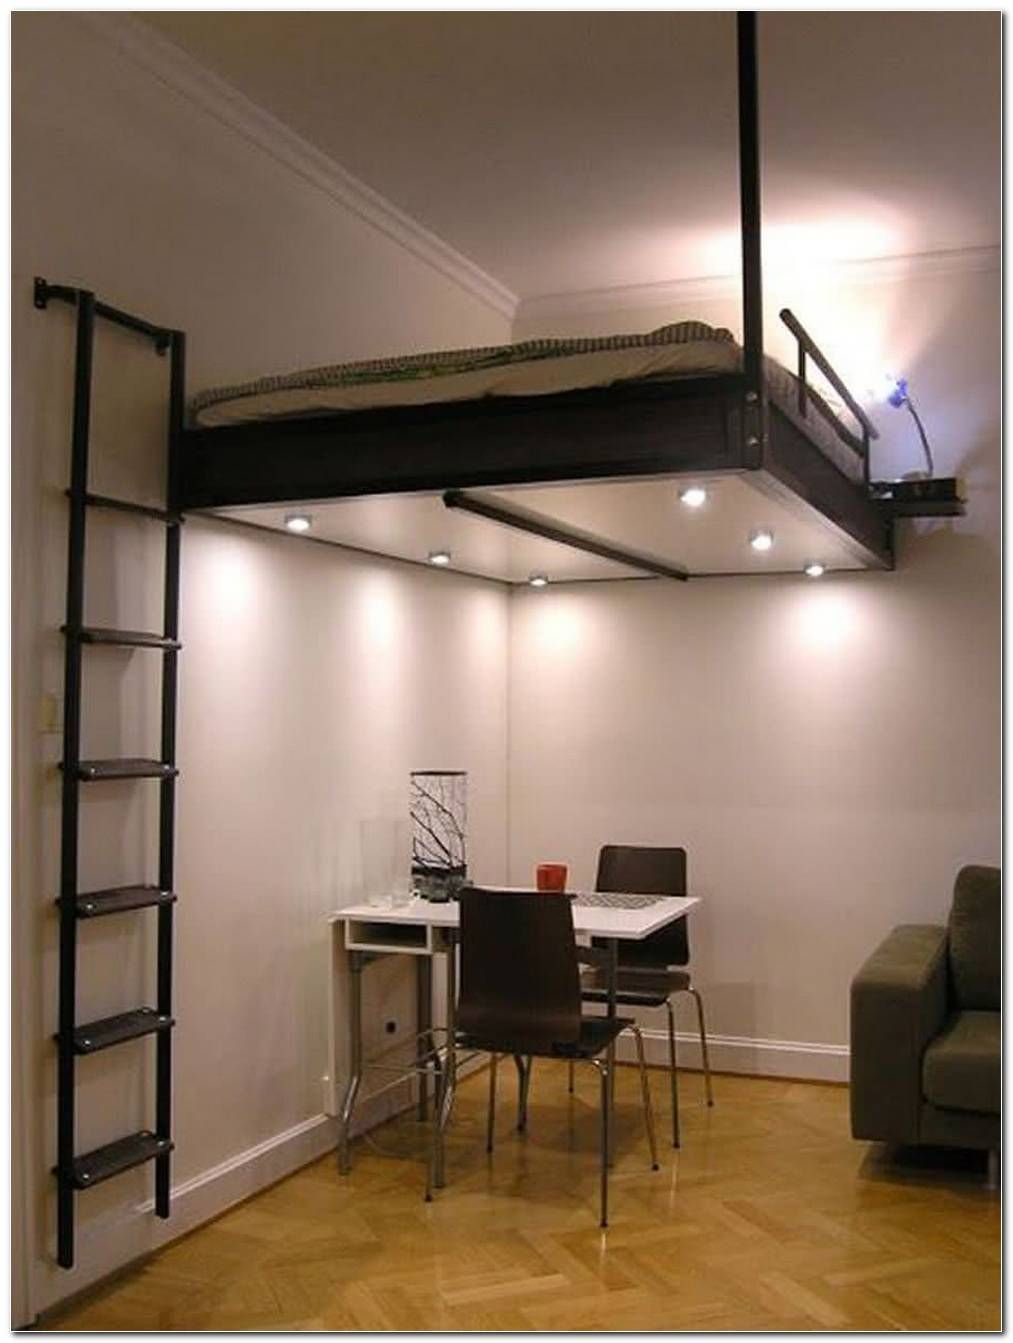 Camas Elevadas Para Casais In 2020 Loft Beds For Small Rooms Space Saving Beds Adult Loft Bed